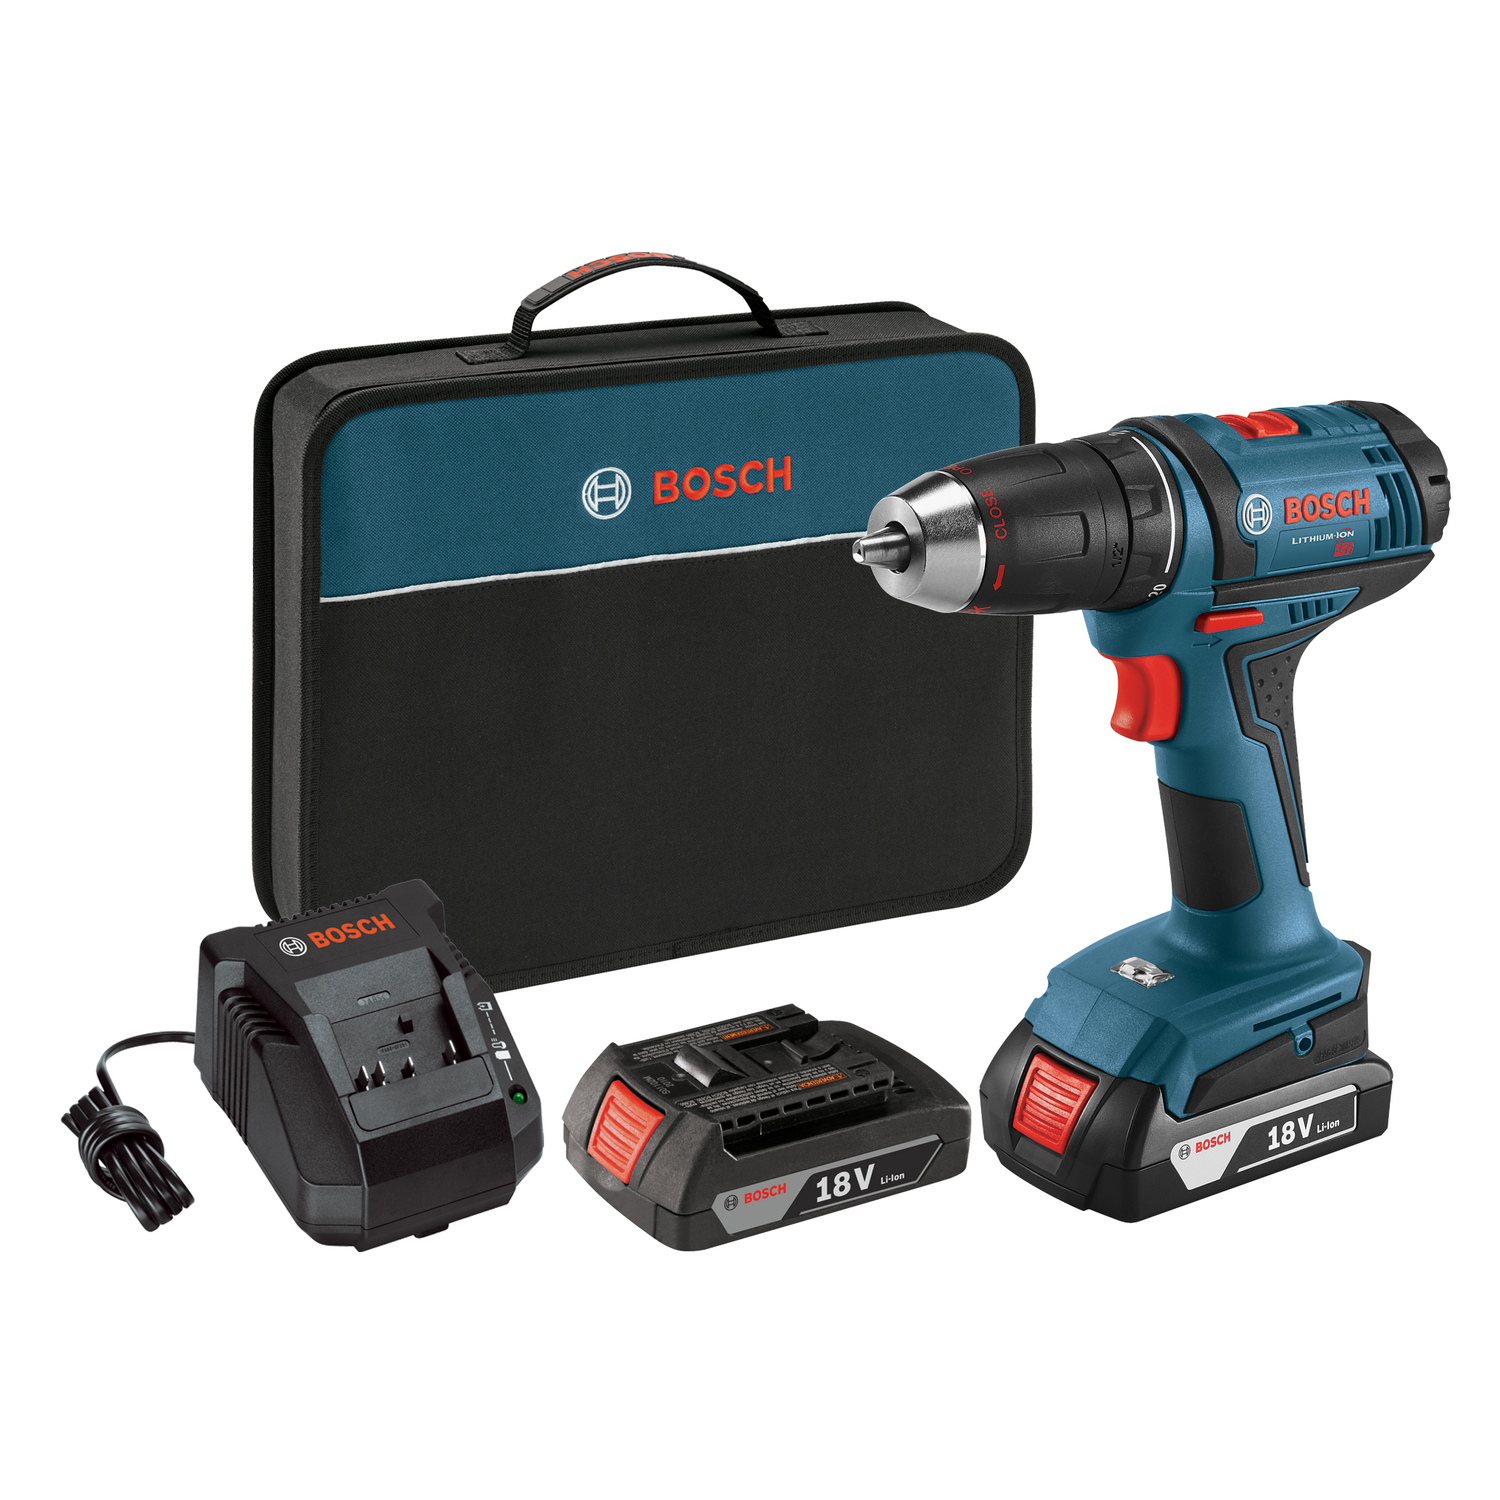 Bosch  18 volts 1/2 in. Cordless Compact Drill/Driver  Kit 1300 rpm 2